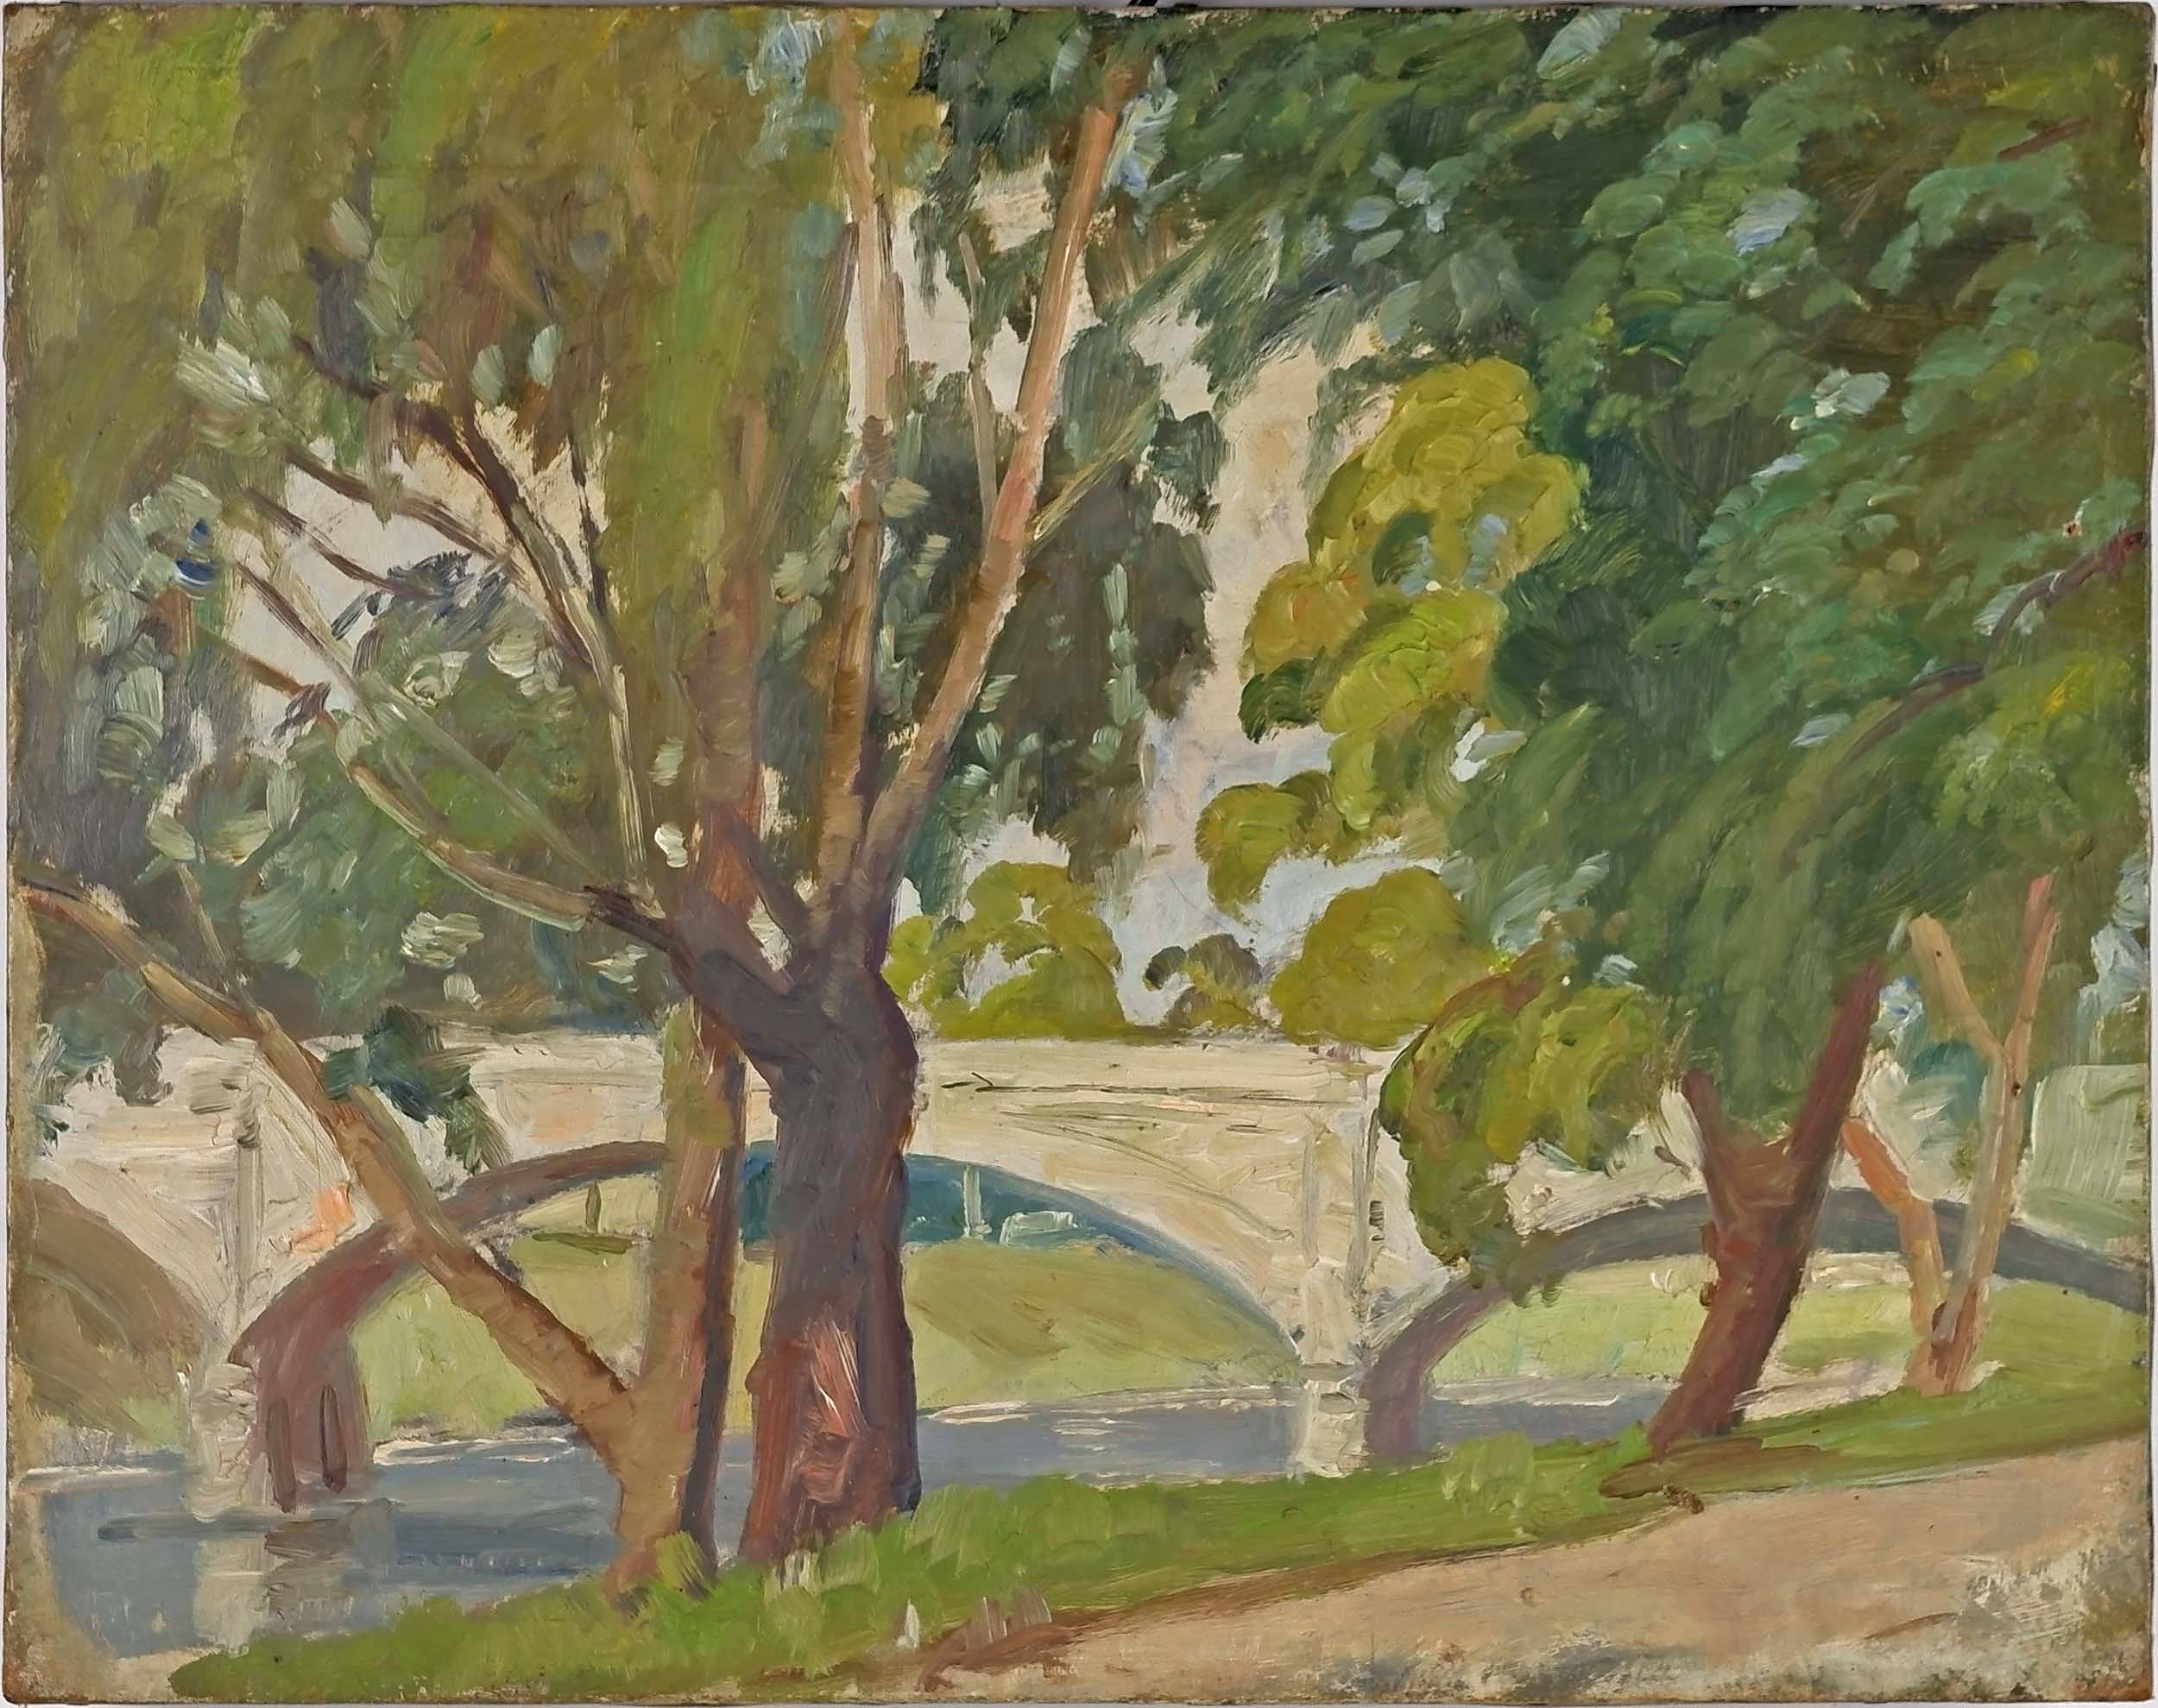 'Evelyn Roadknight (Dates Unknown) Anderson St South Yarra, Oil on Canvas'